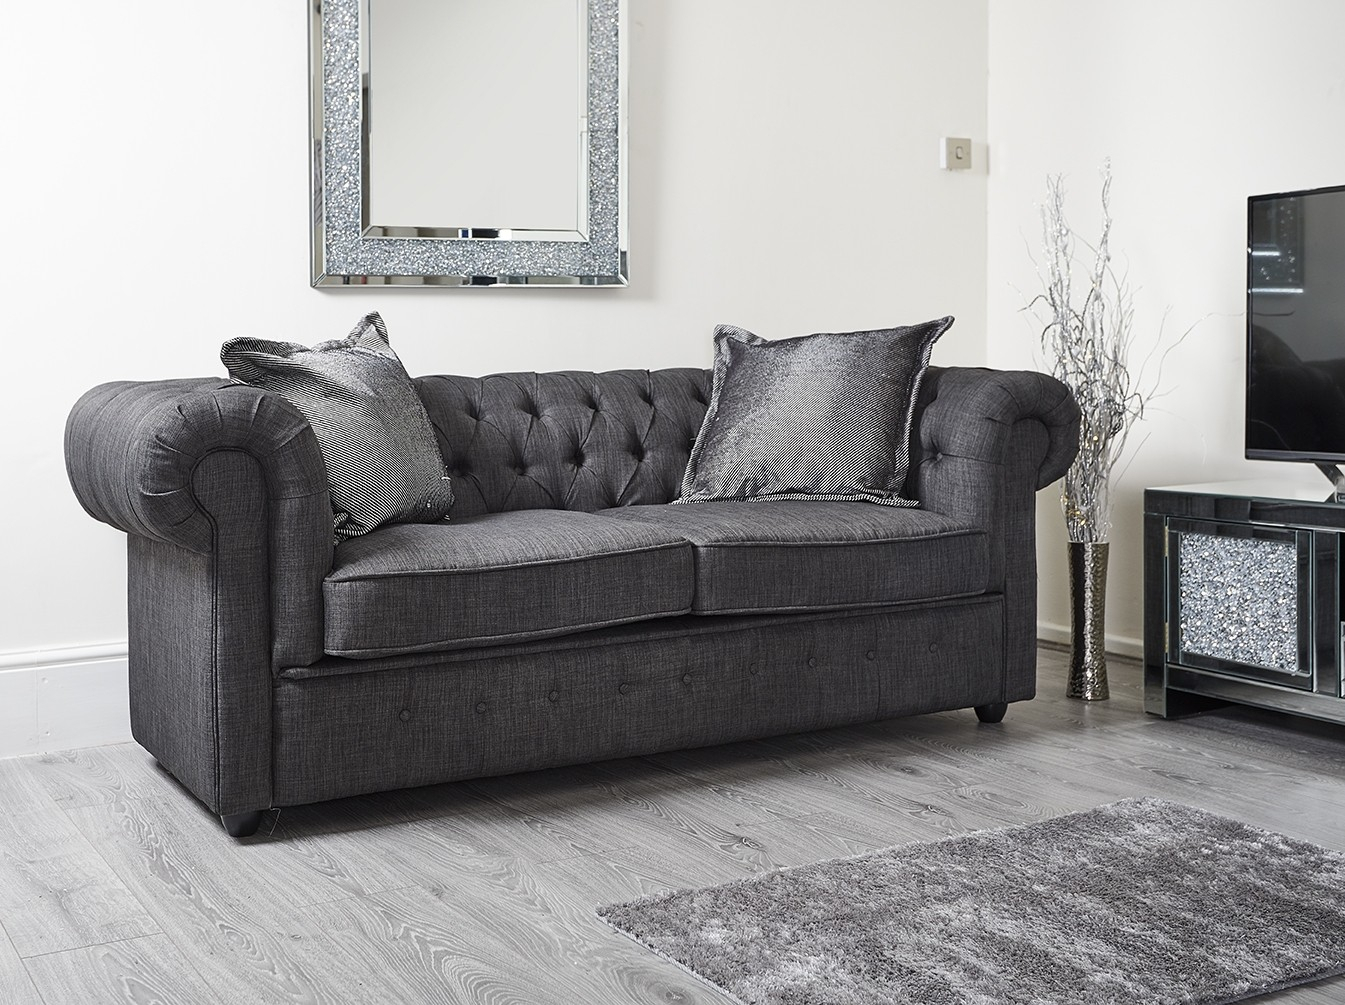 Chesterfield Black Pu Leather Sofa | Abreo Abreo Home With Canterbury Leather Sofas (View 8 of 12)